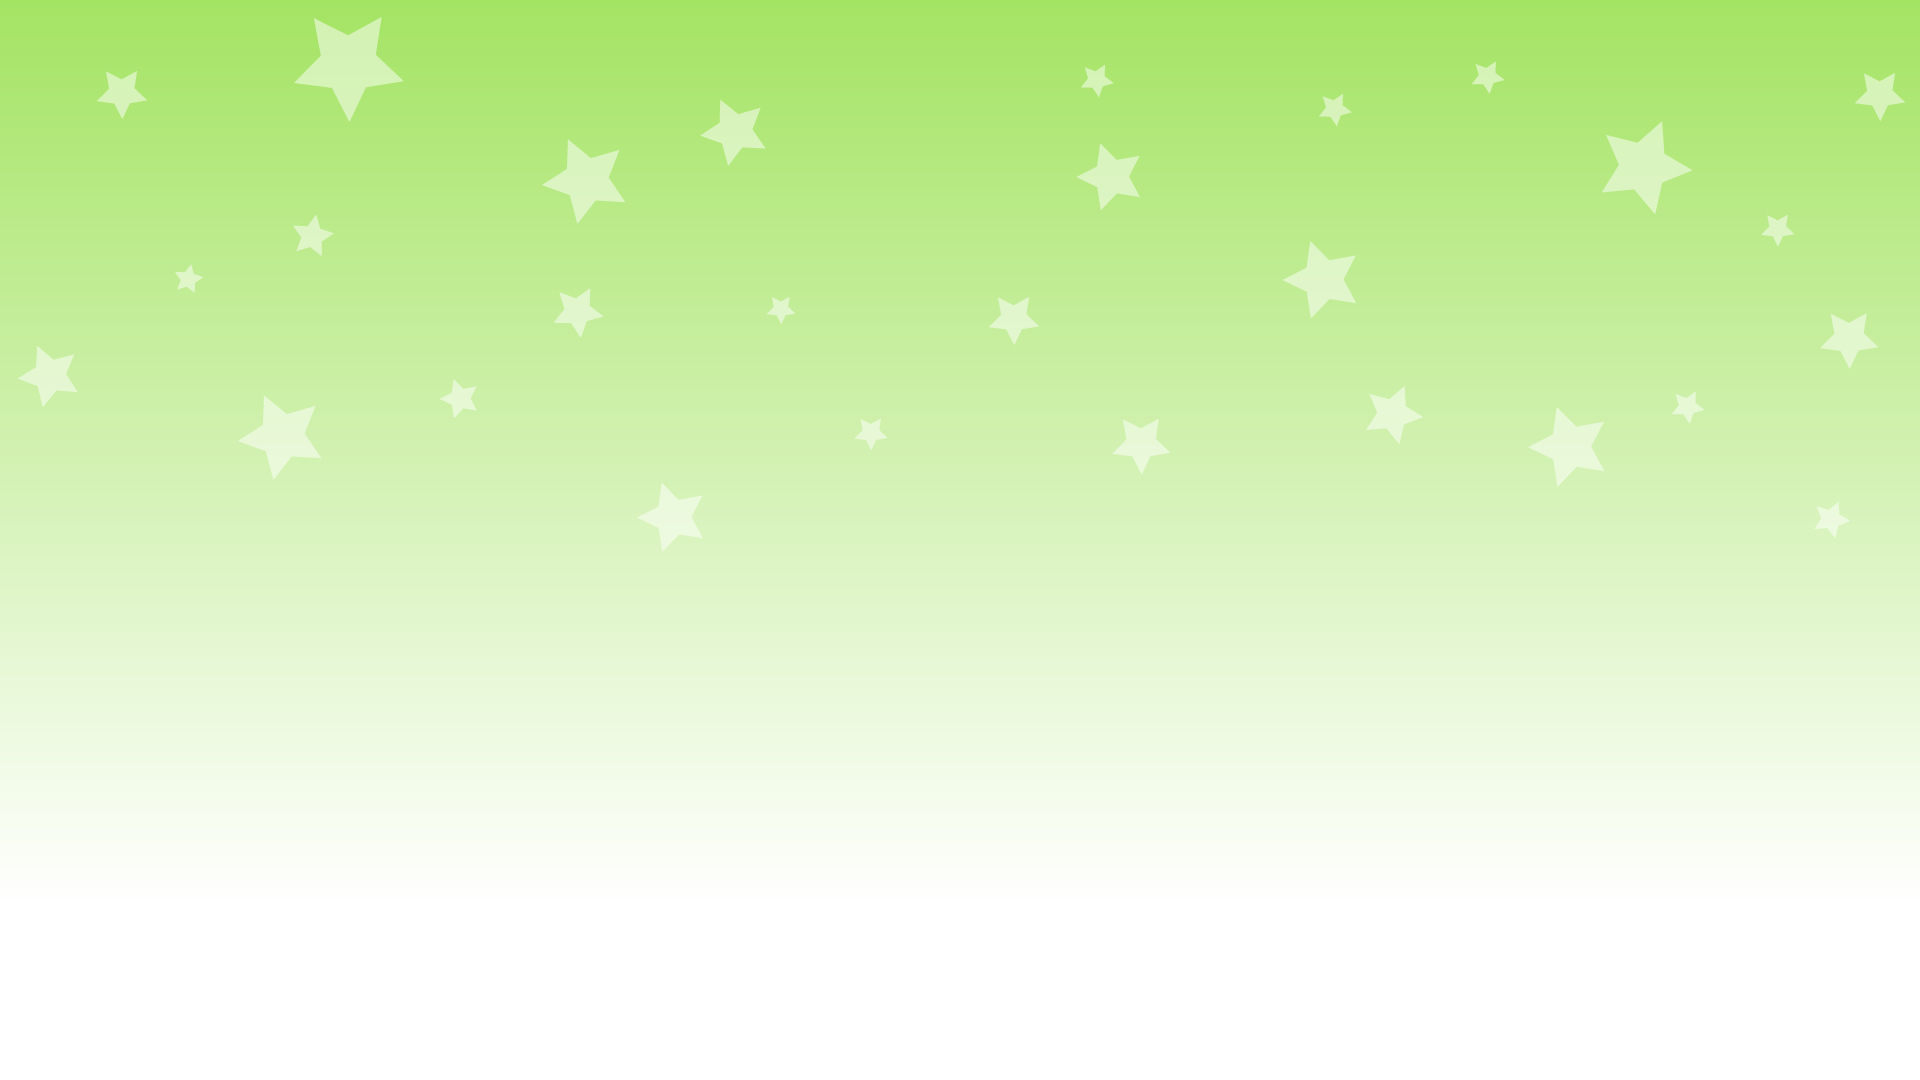 Shooting Star Background for Pinterest 1920x1080